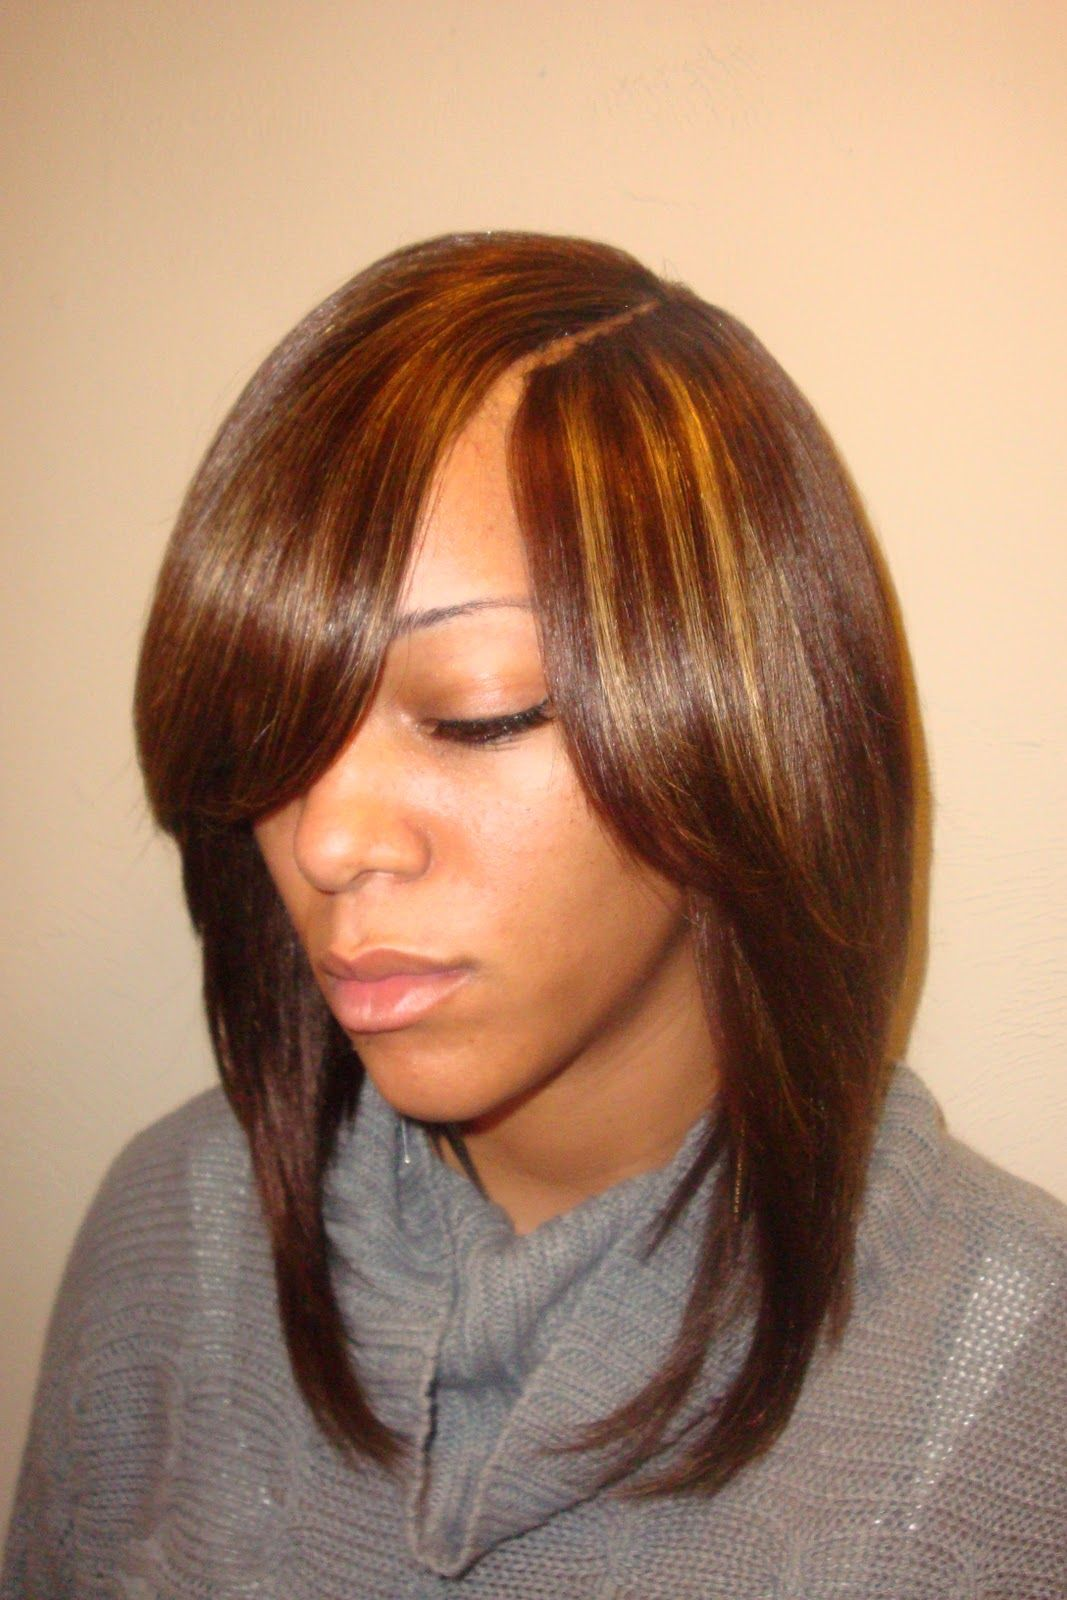 Sew In Hairstyles Long Hair Sew In Bob Hairstyles Invisible Part 255 Hair Styles Pinterest